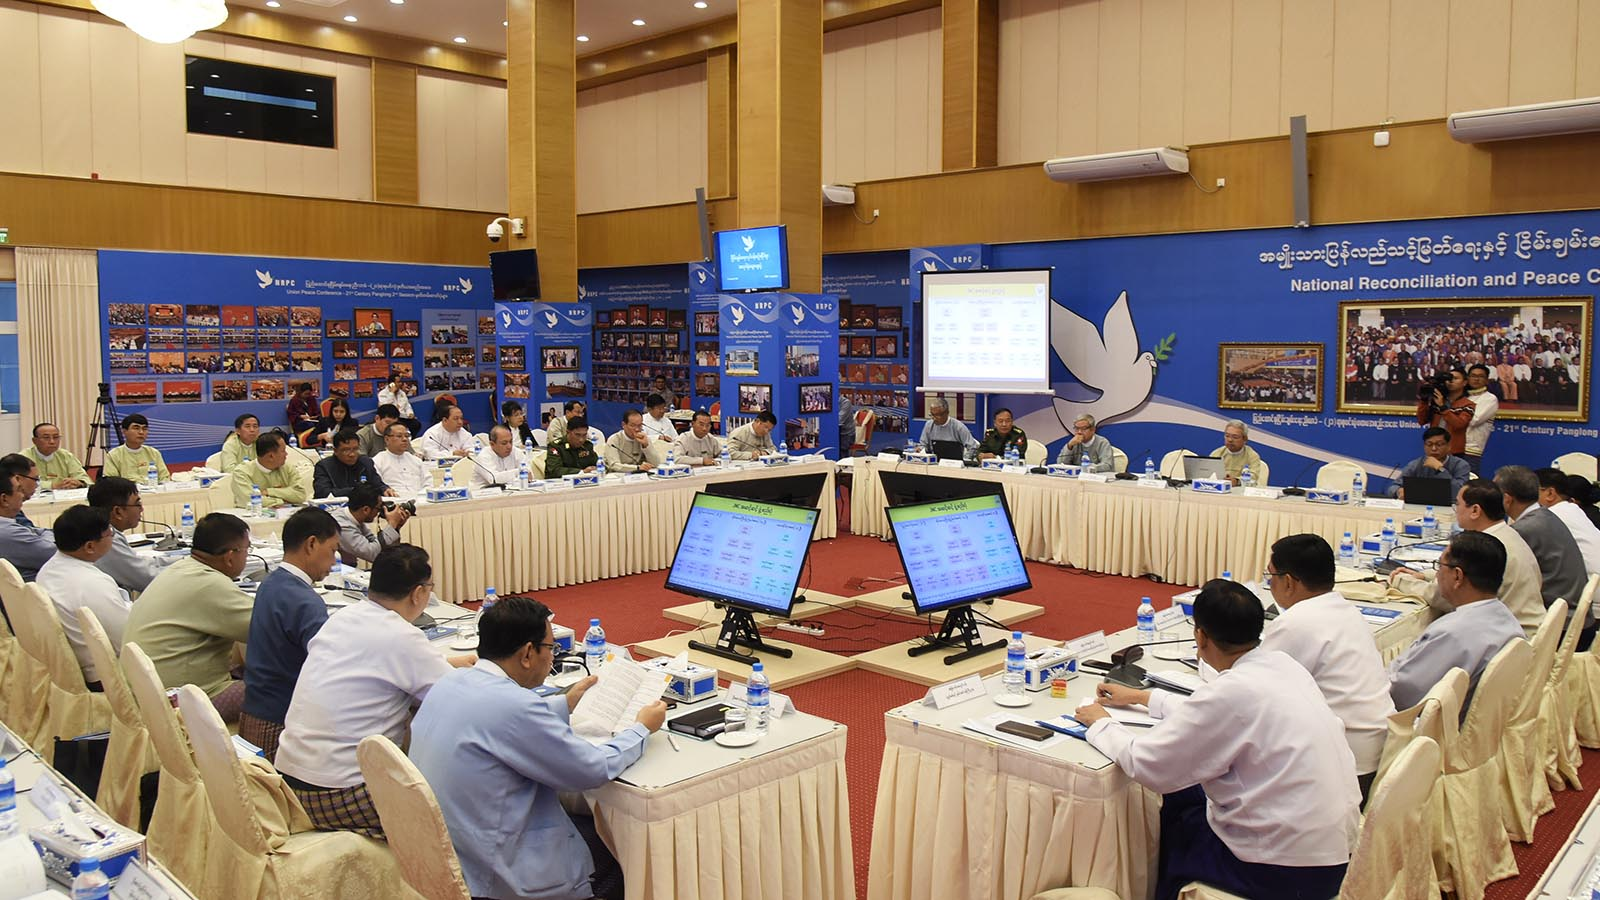 The 2nd day workshop of National Reconciliation and Peace Center (NRPC) holds in Nay Pyi Taw yesterday. Photo: MNA